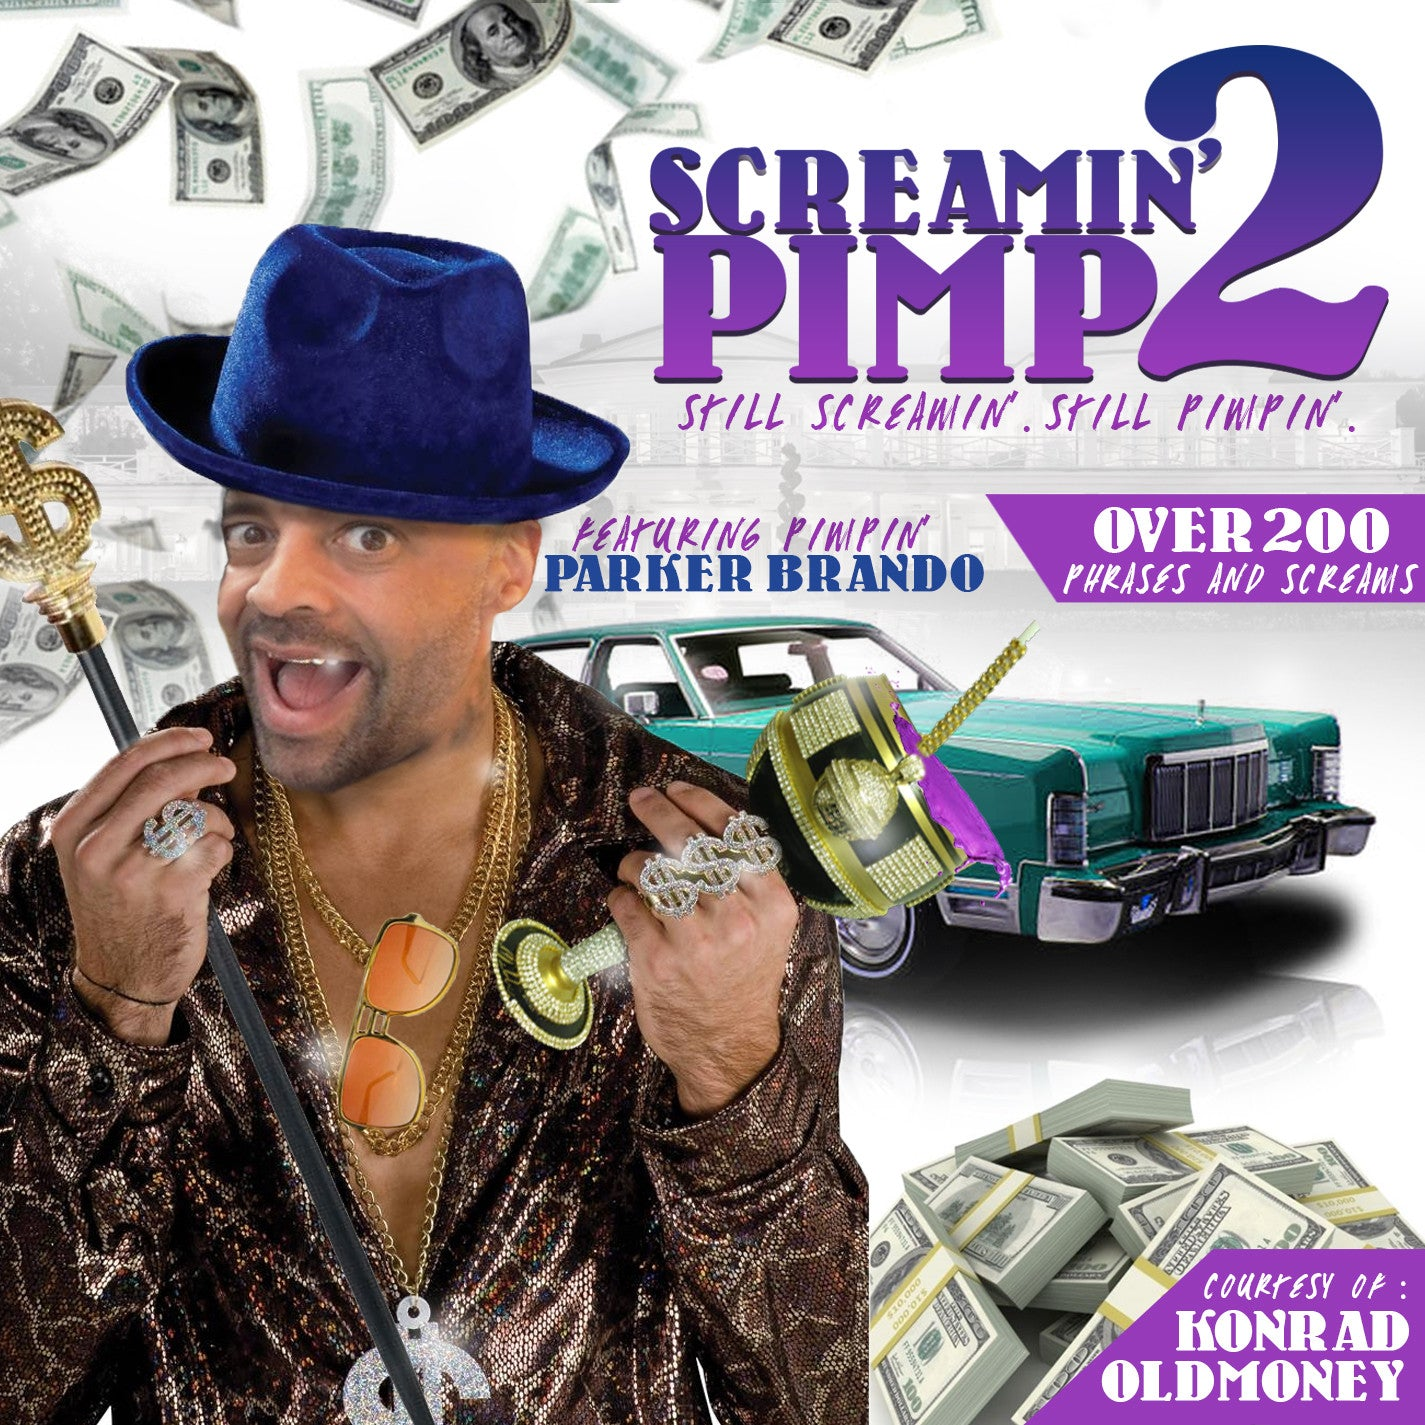 Screaming Pimp 2